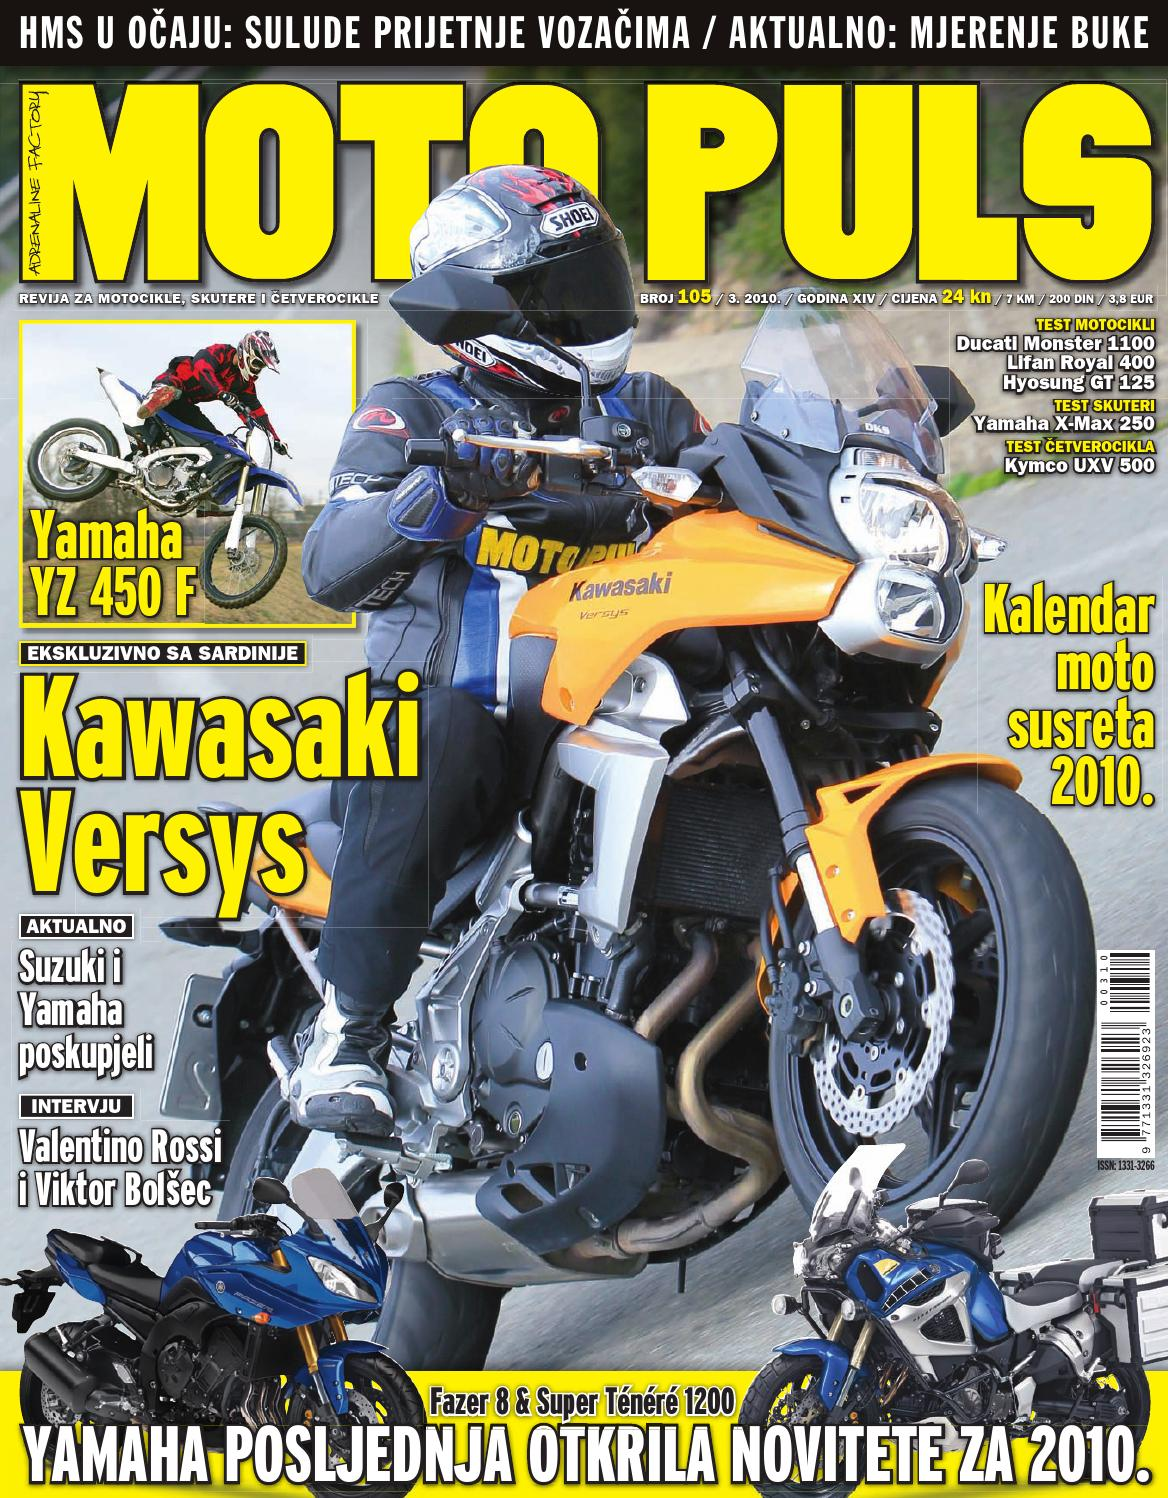 Motopuls 106 42010 By Motopuls Issuu